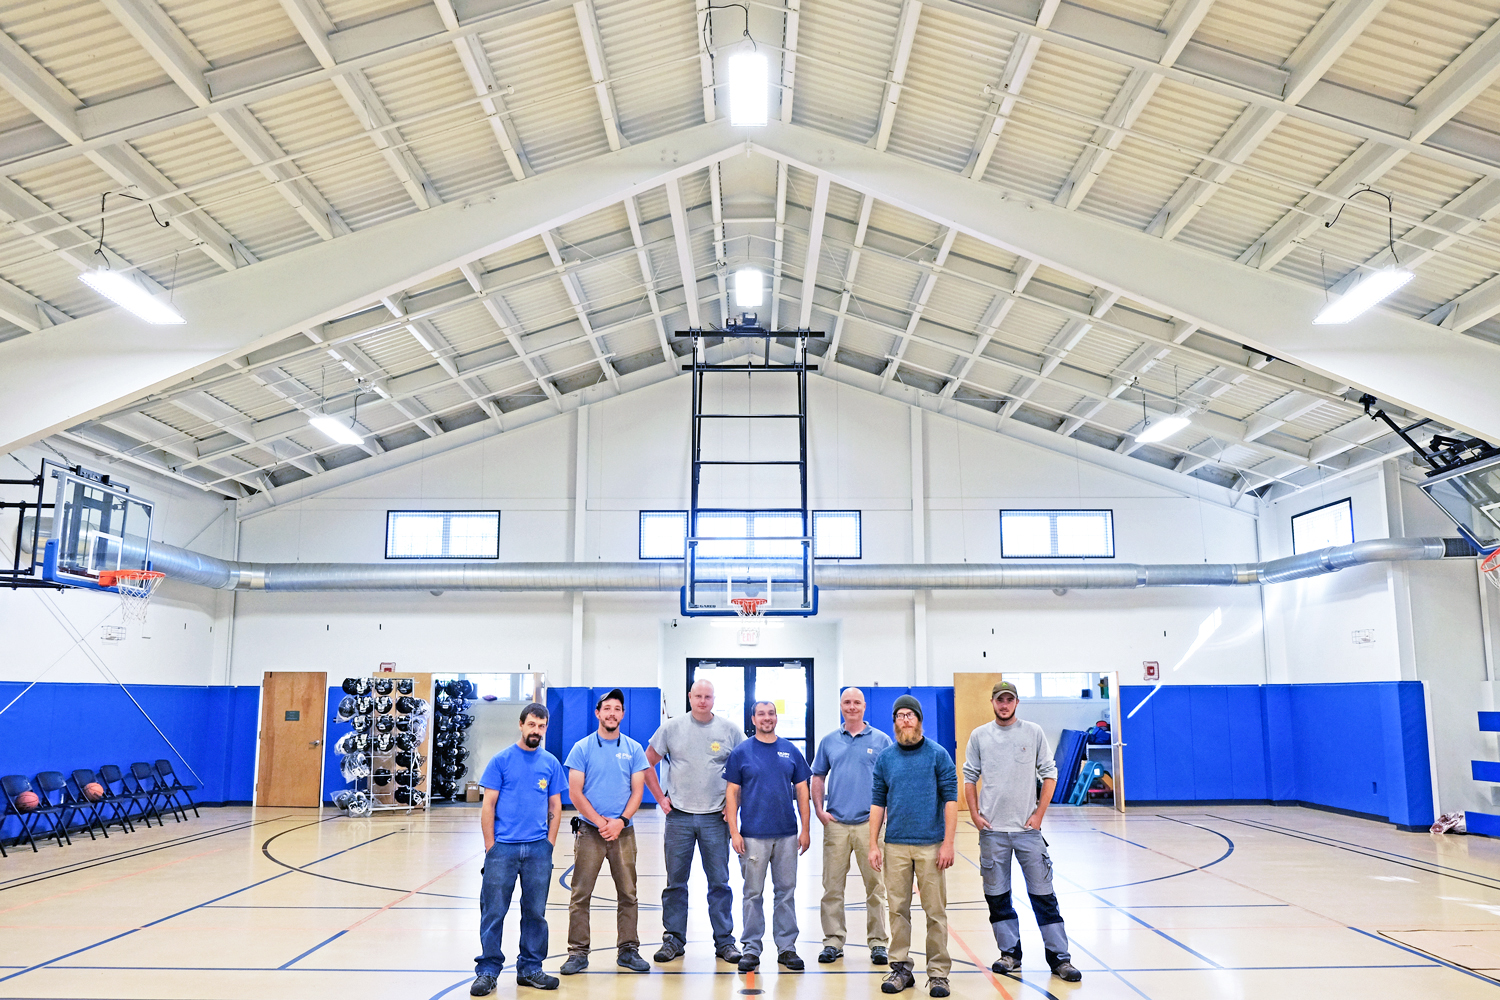 Commercial Led Lighting Facility Retrofits To Save Energy Wiring Navigation Lights Installing Equipment